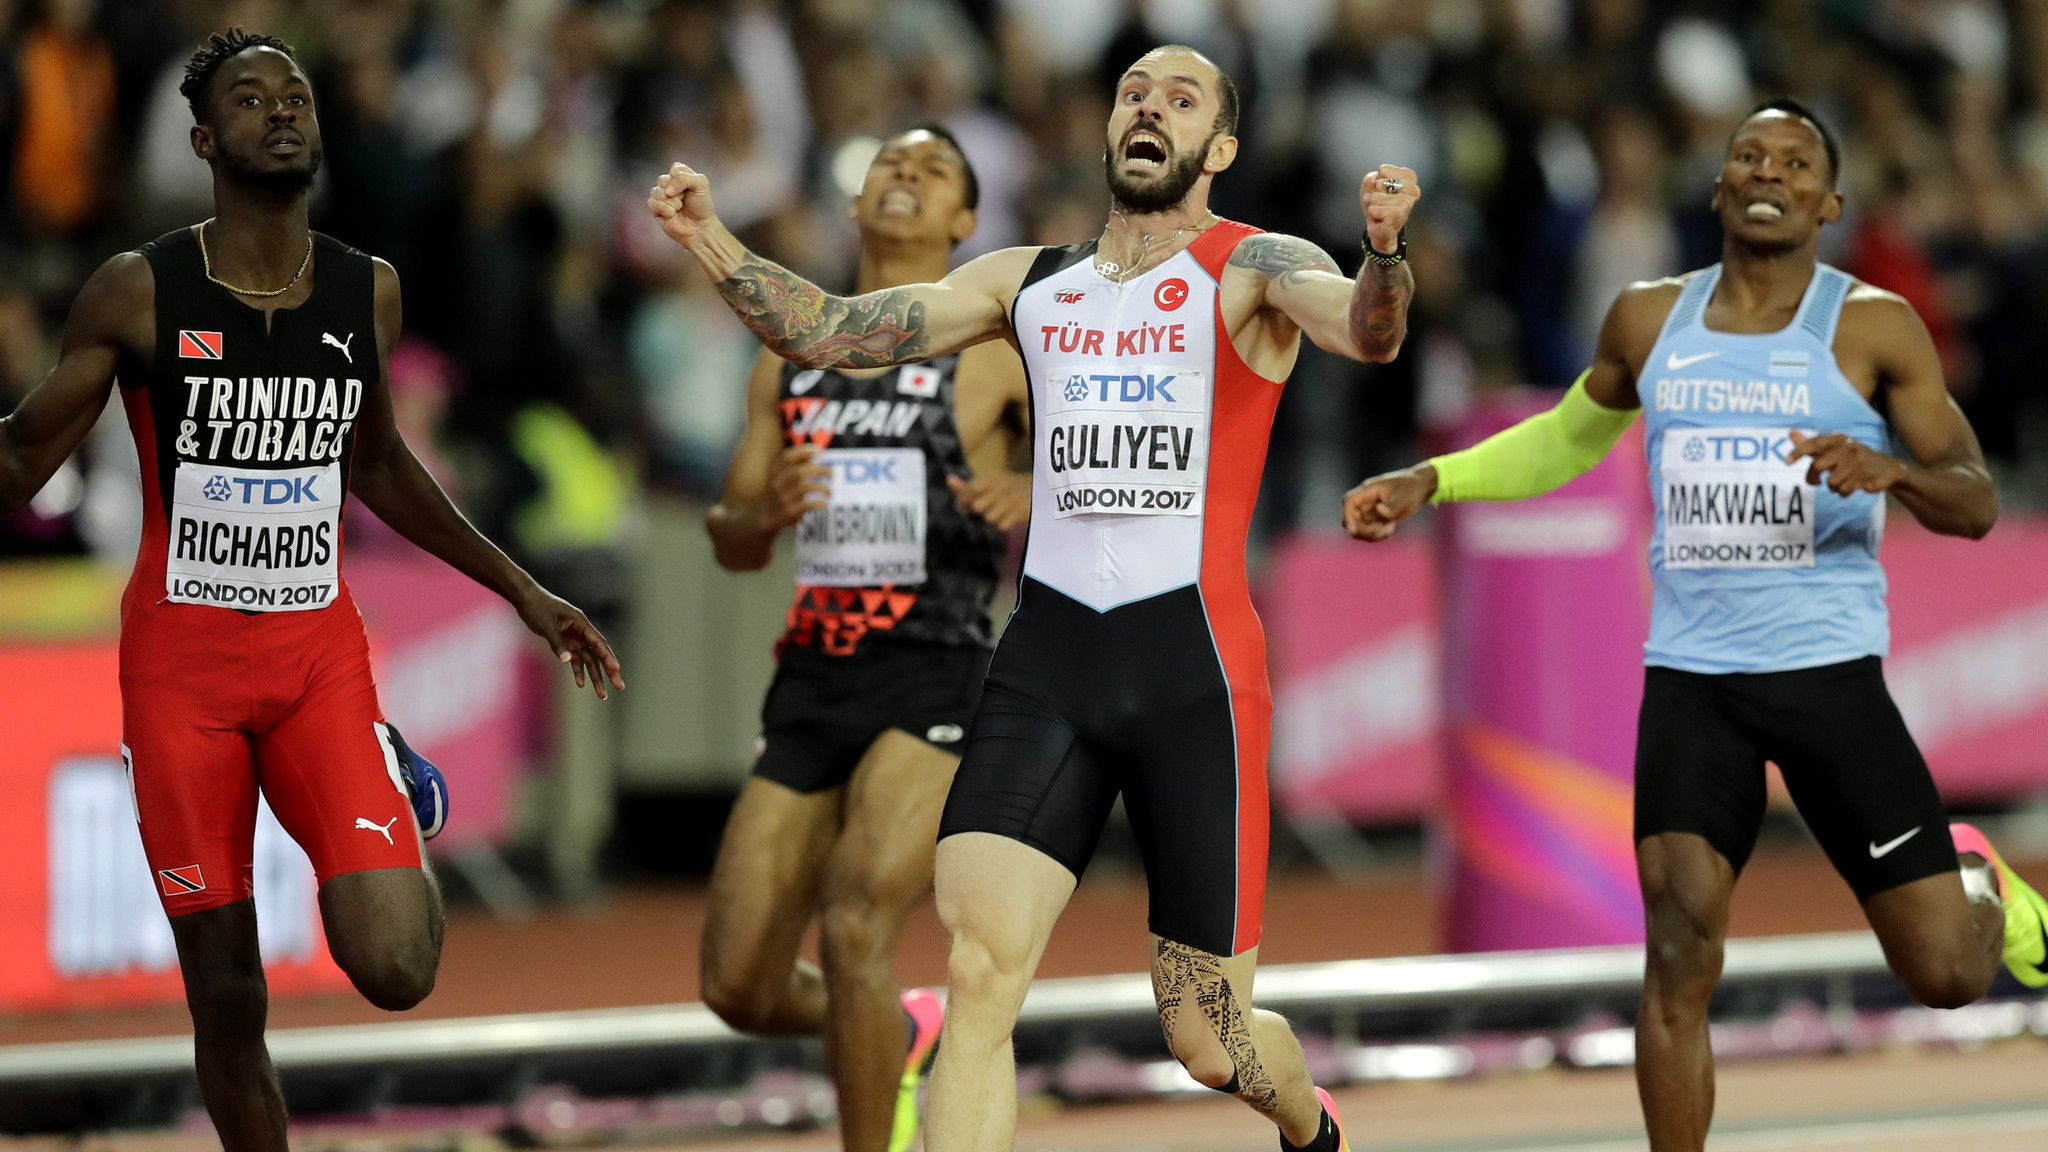 Ramil Guliyev pulls off stunning win in men's 200 meters at world track championships